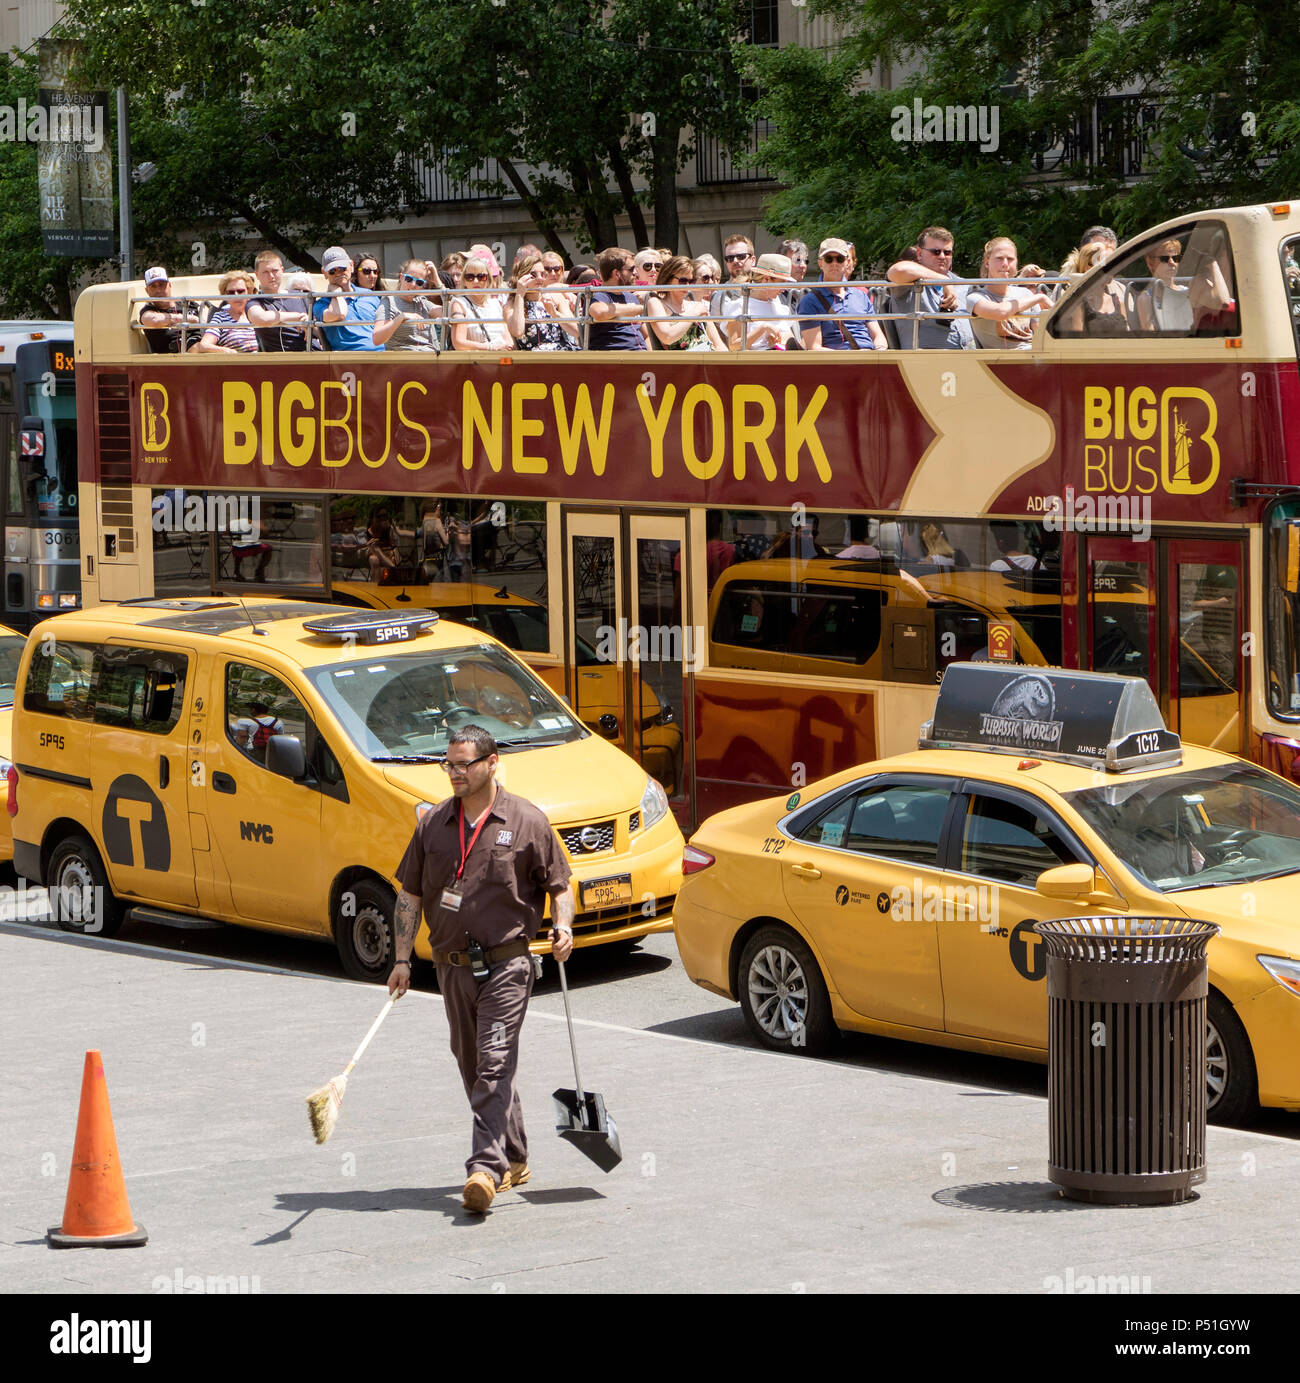 New york USA. Uniformed man from The MET with dustpan and brush sidewalk cleaning outside this famous museum watched bus load of tourists. - Stock Image